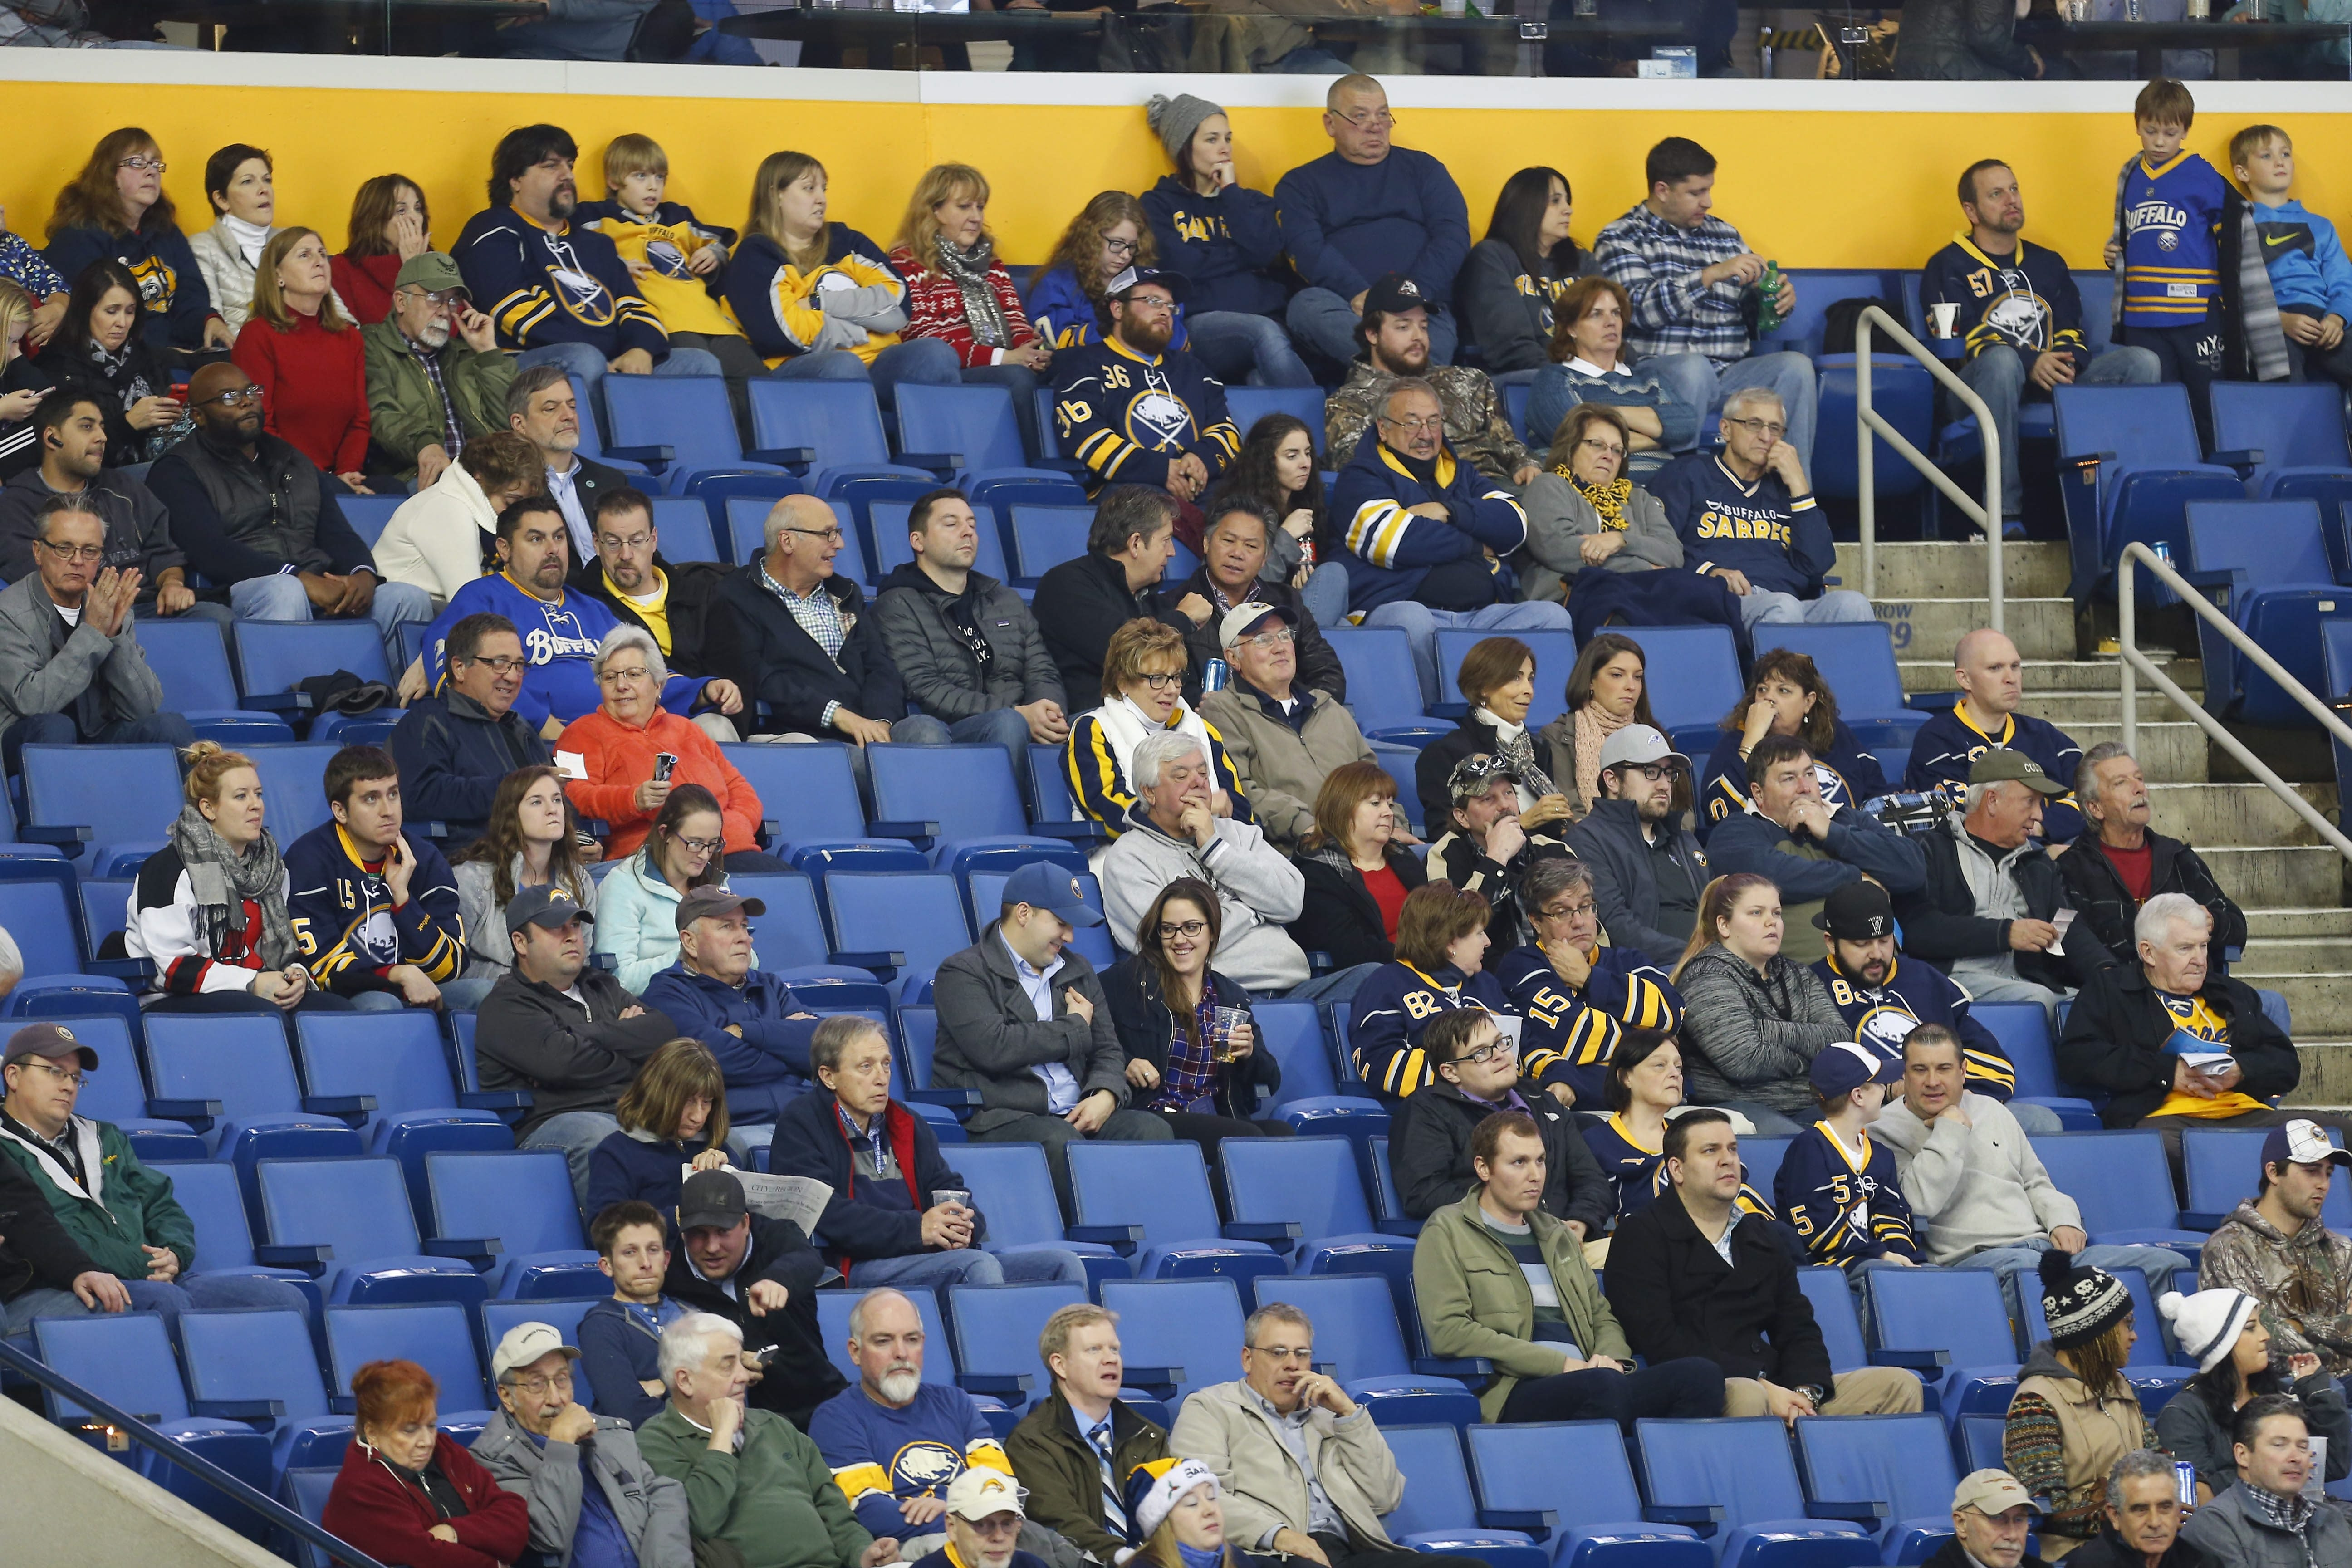 Empty seats at First Niagara Center tell the story of falling attendance even though the Sabres have added more talent to the team.